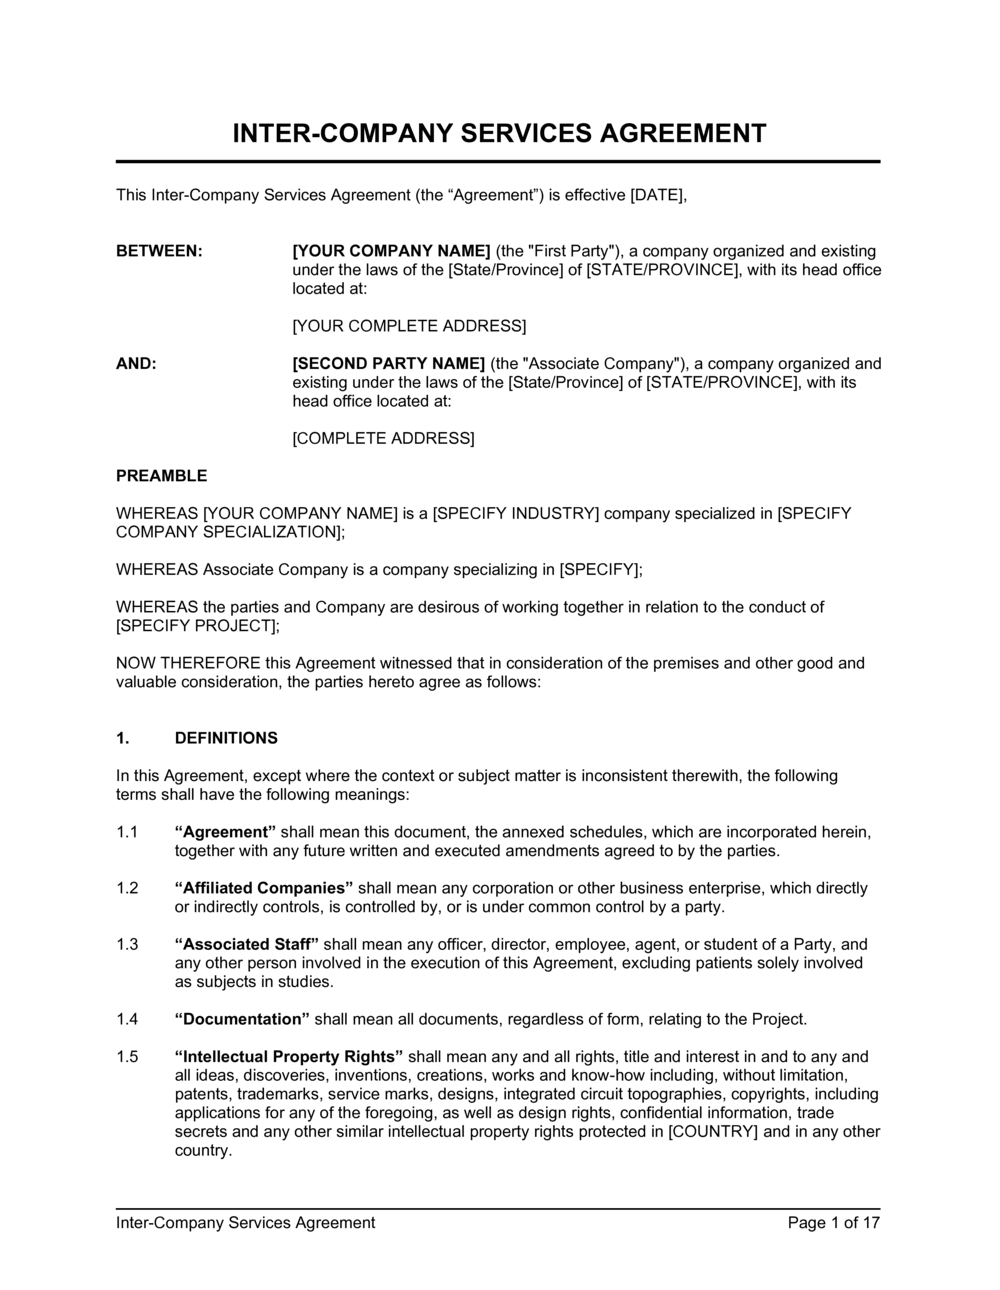 Business-in-a-Box's Inter-Company Services Agreement Template